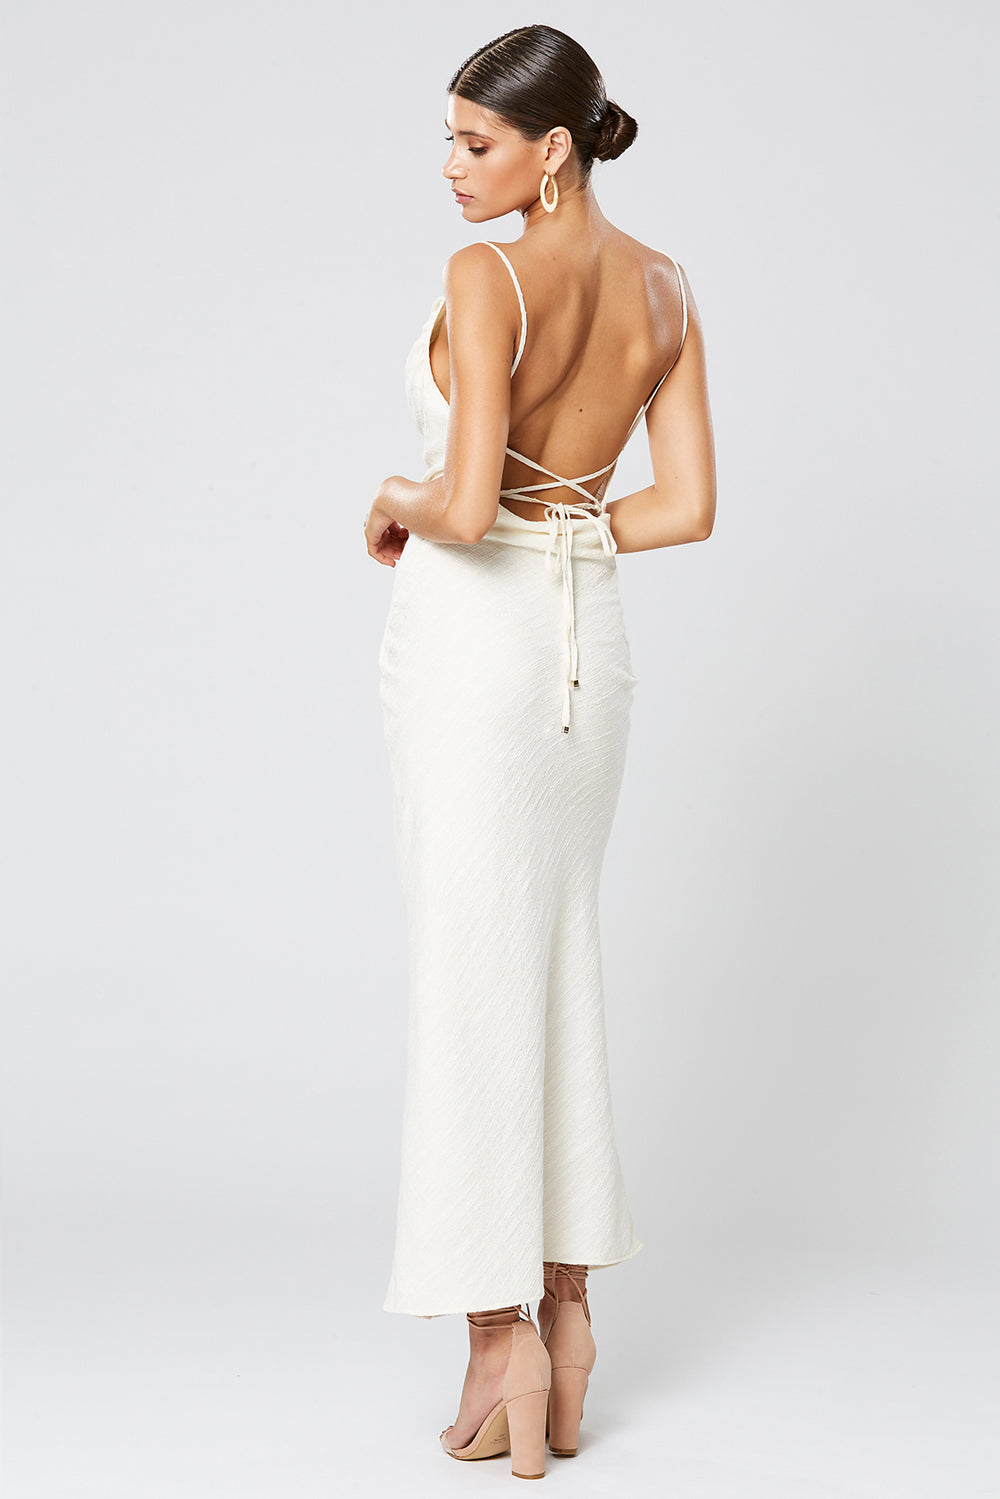 FORTUNE COWL NECK MAXI DRESS IVORY